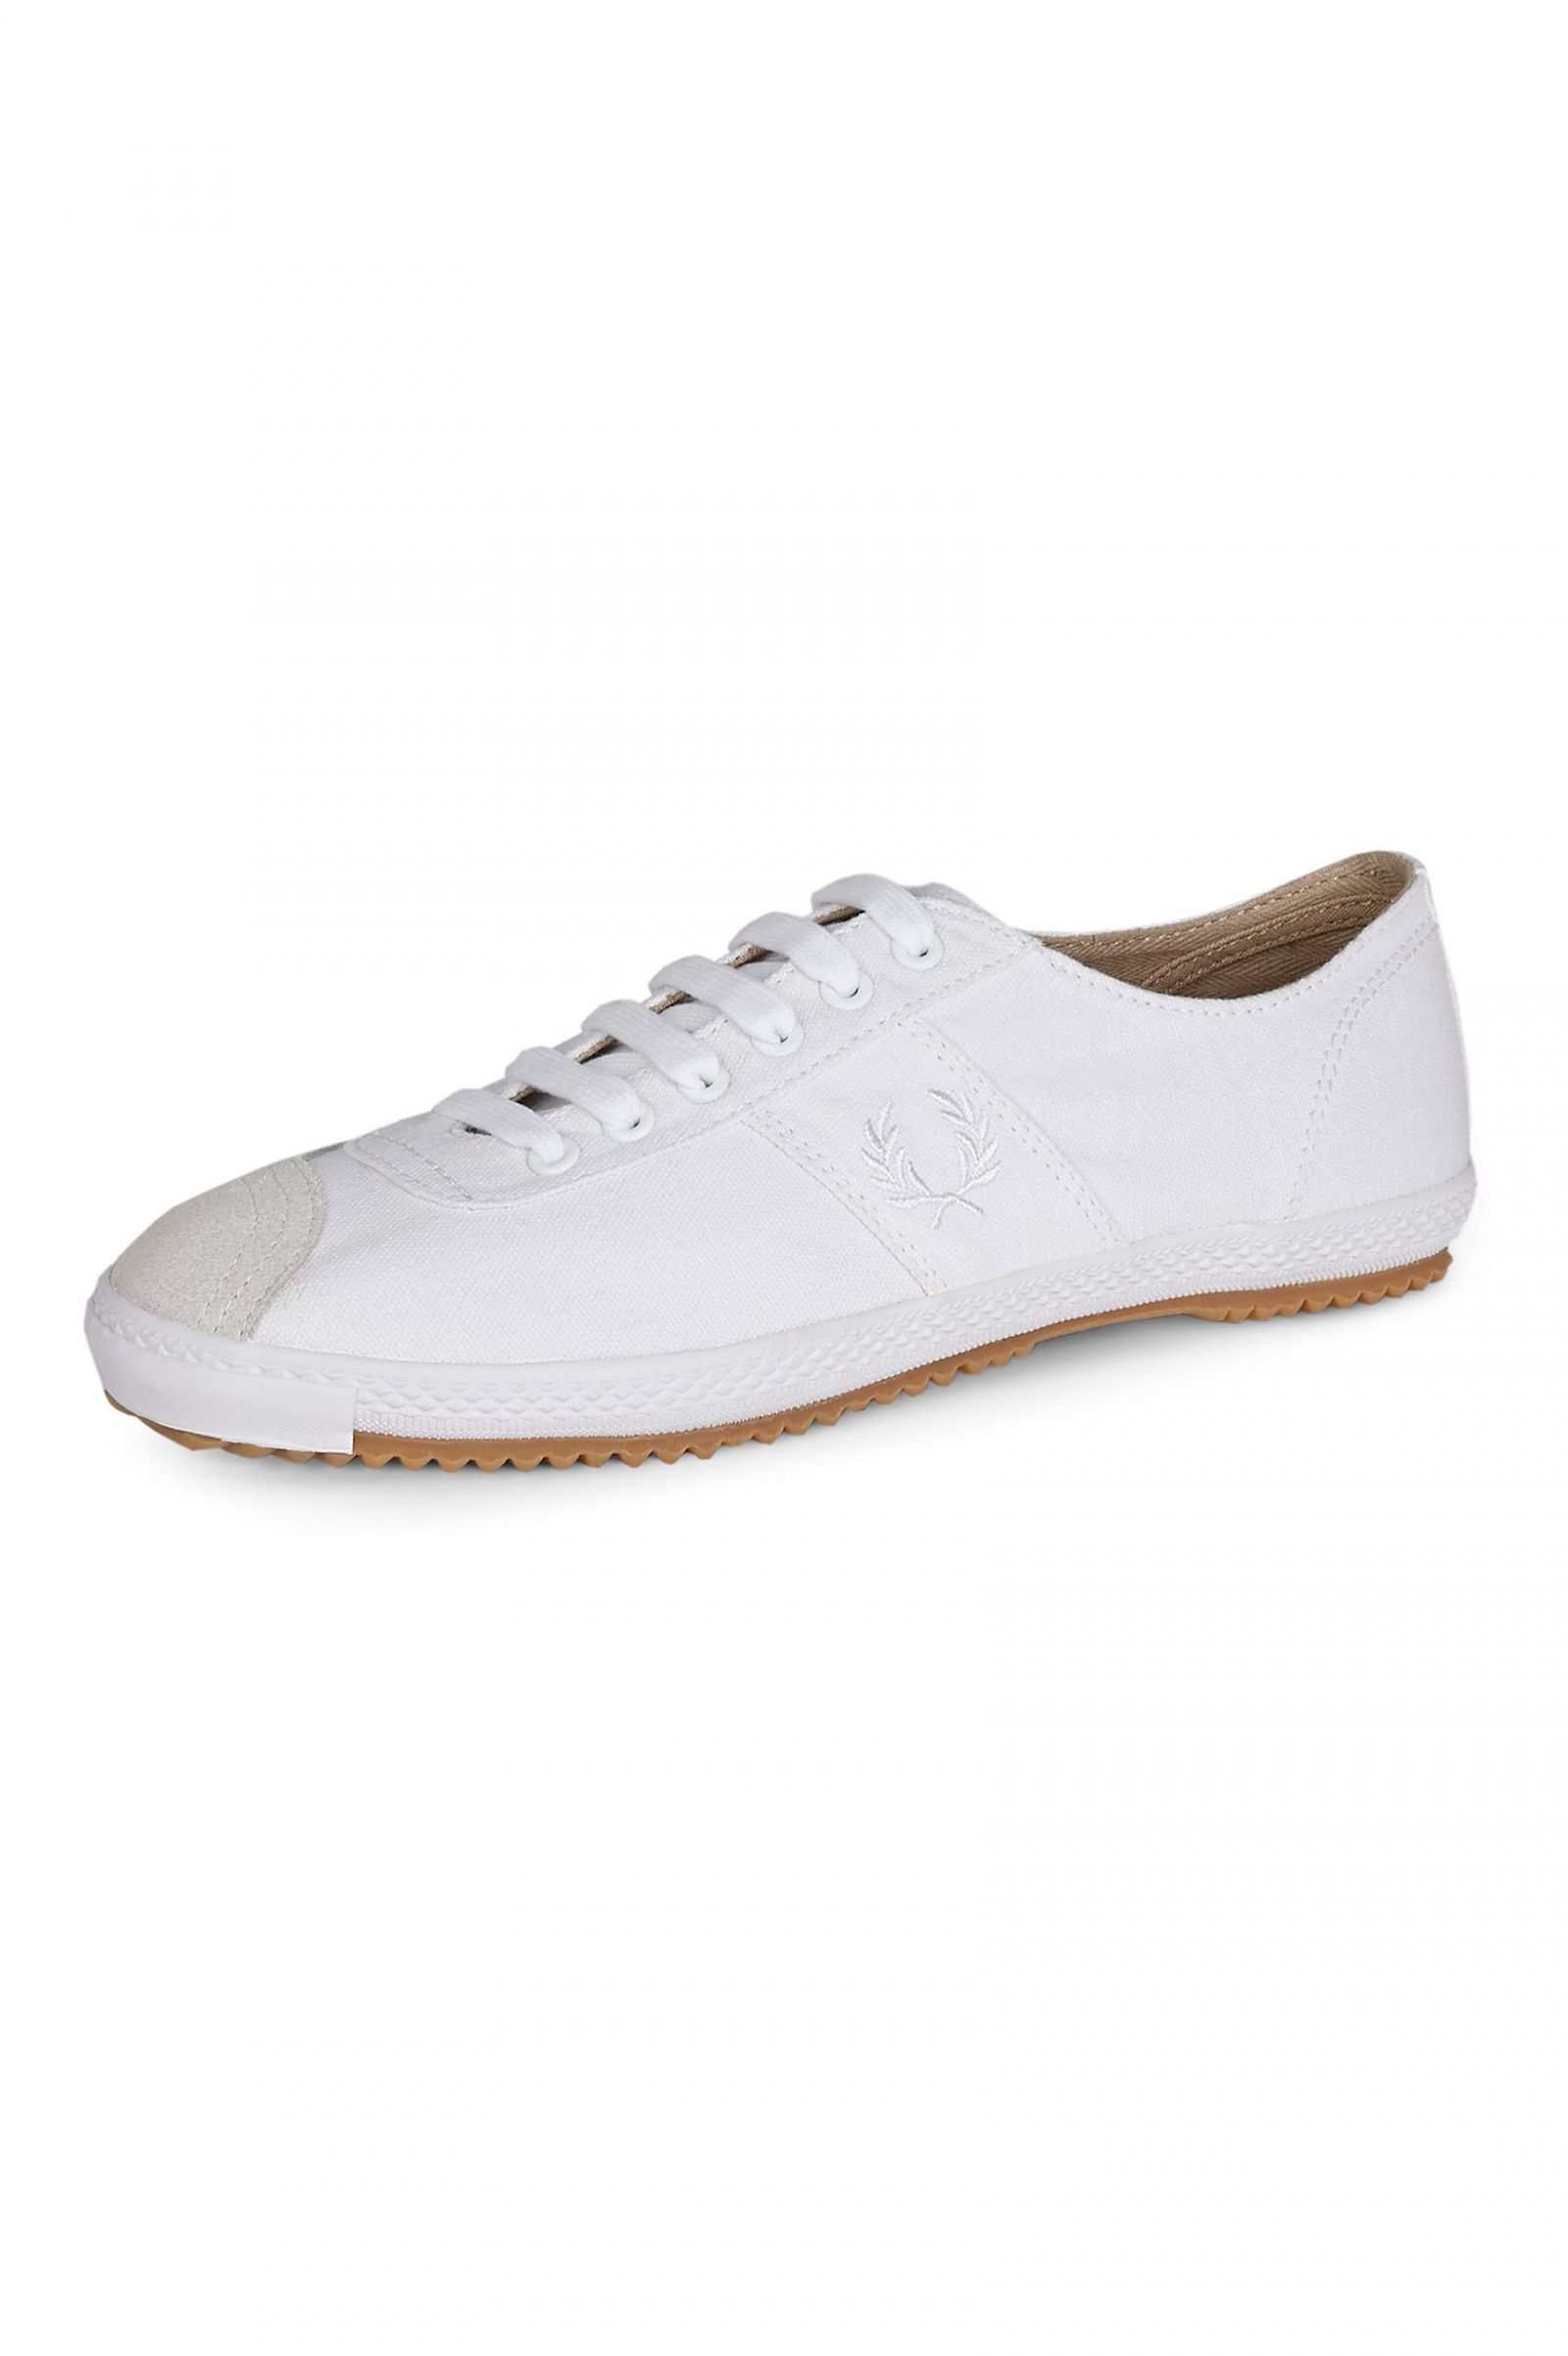 Reissues Table Tennis Shoe White | Fred